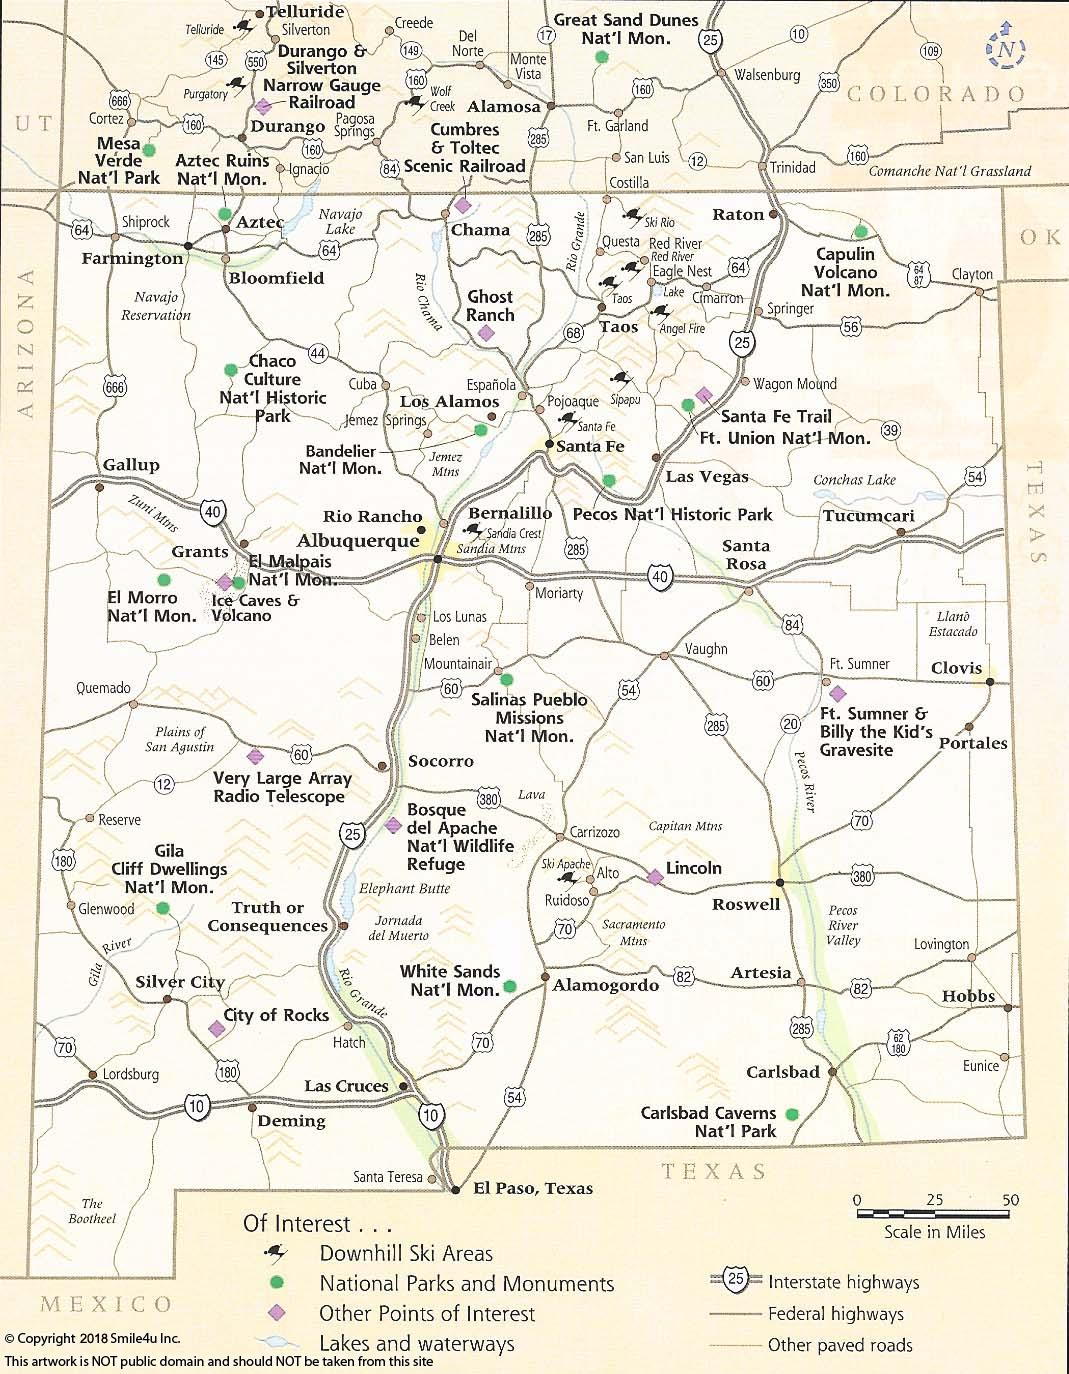 309134_watermarked_New Mexico State Map .jpg